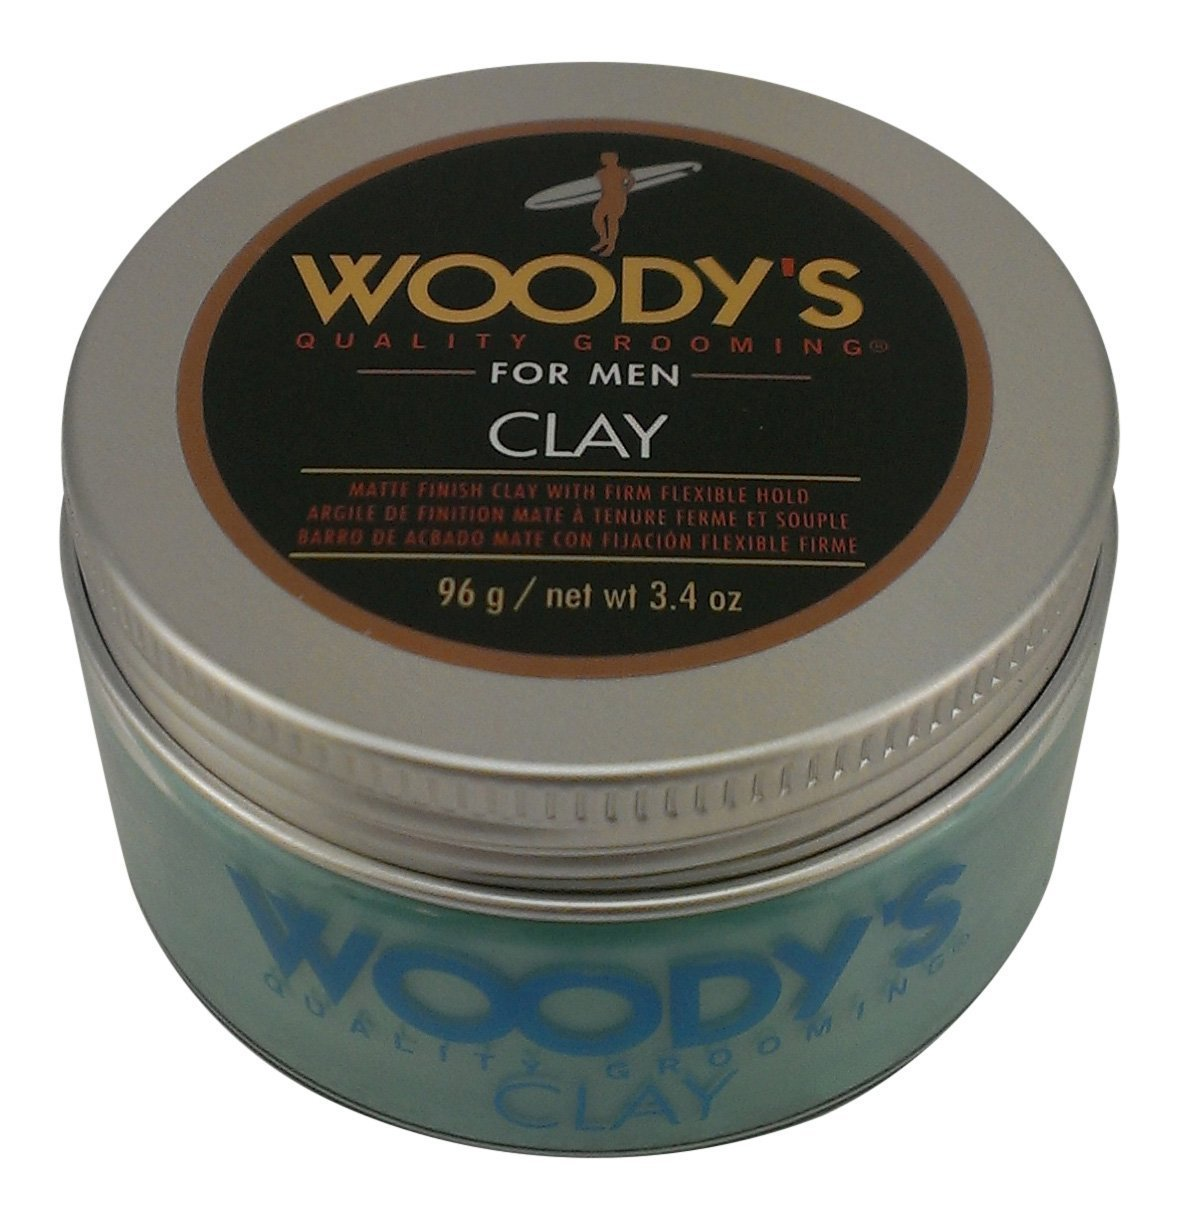 Woody's Matte Finish Clay for Men, Styling, 3.4 Ounce Woody's WDY90597